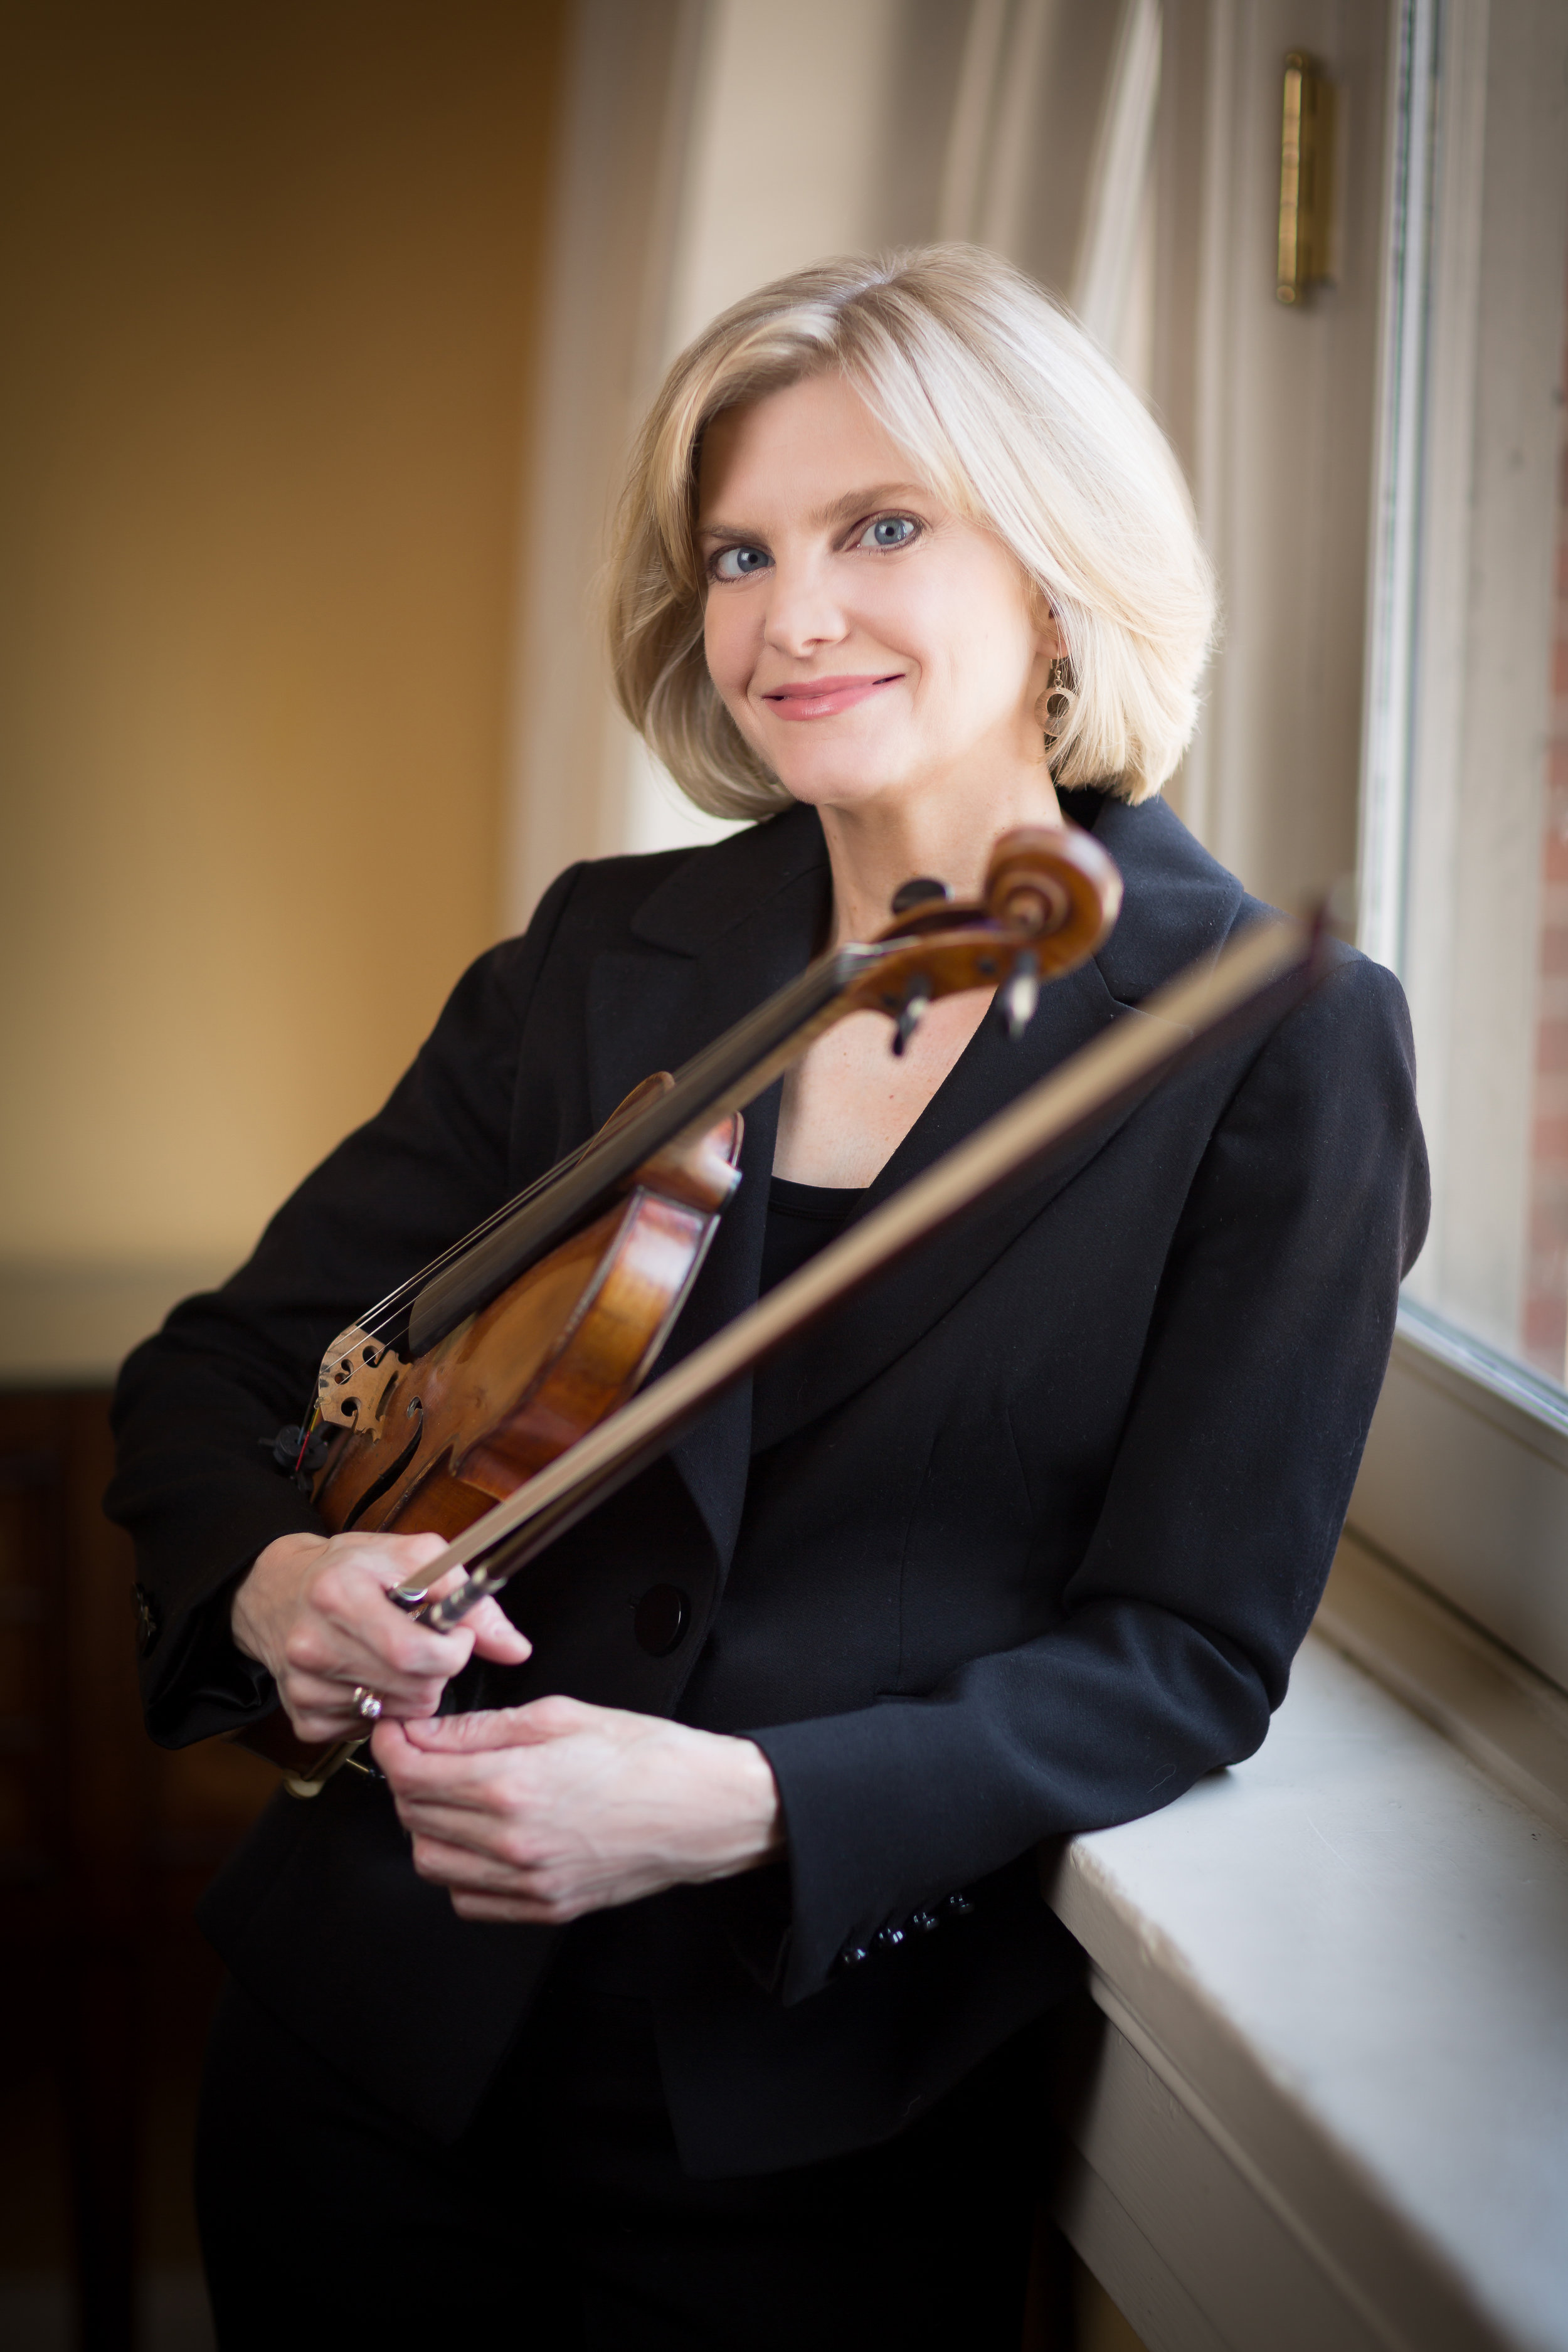 Wendy Putnam, Boston Symphony Orchestra violinist and founder/director of the Concord Chamber Music Society. The group's 20th anniversary season includes a premiere by Yehudi Wyner, and performances by Marc-André Hamelin and Yefim Bronfman,